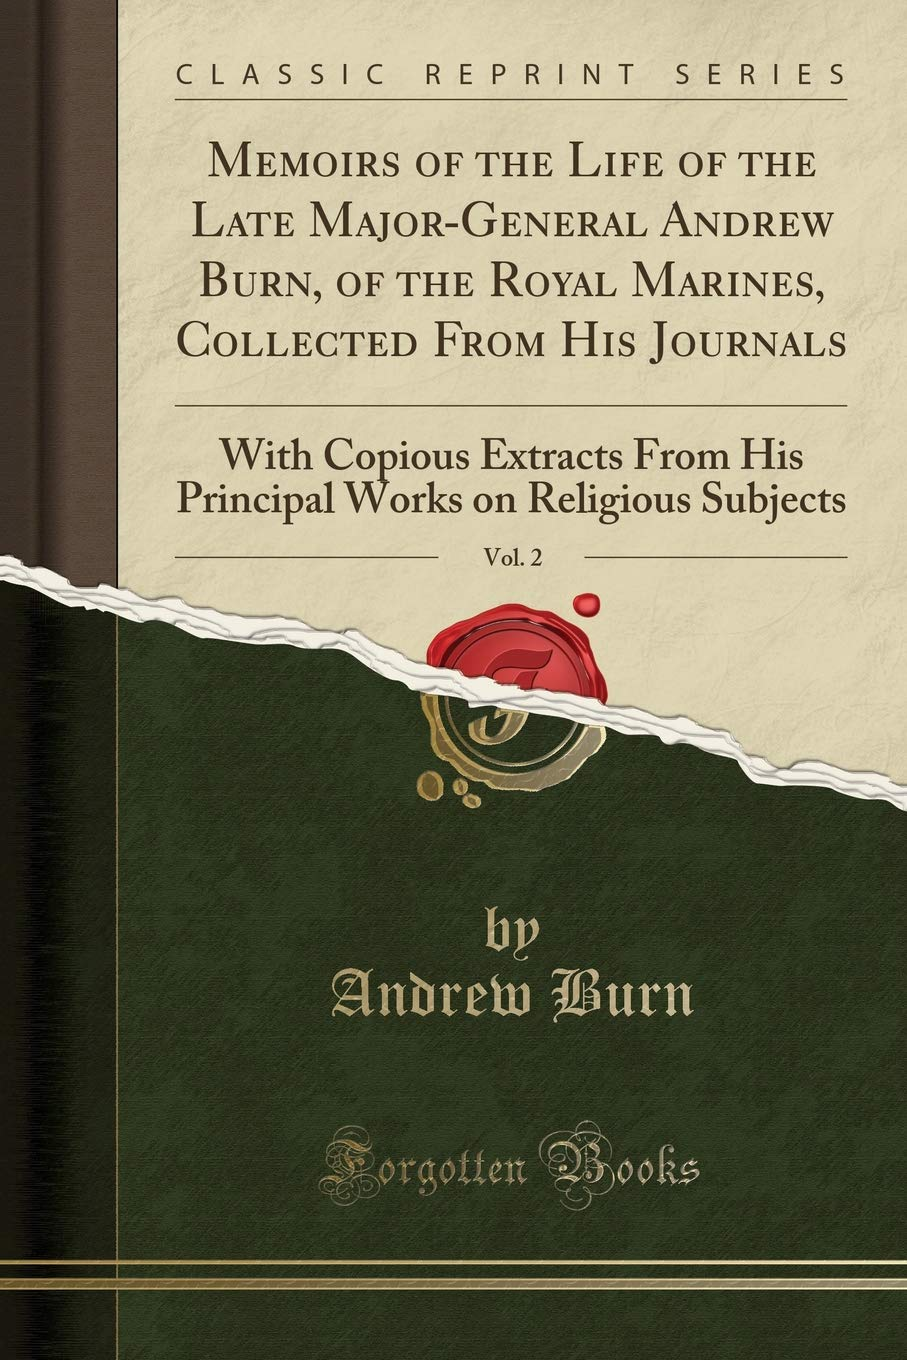 Read Online Memoirs of the Life of the Late Major-General Andrew Burn, of the Royal Marines, Collected From His Journals, Vol. 2: With Copious Extracts From His ... Works on Religious Subjects (Classic Reprint) PDF